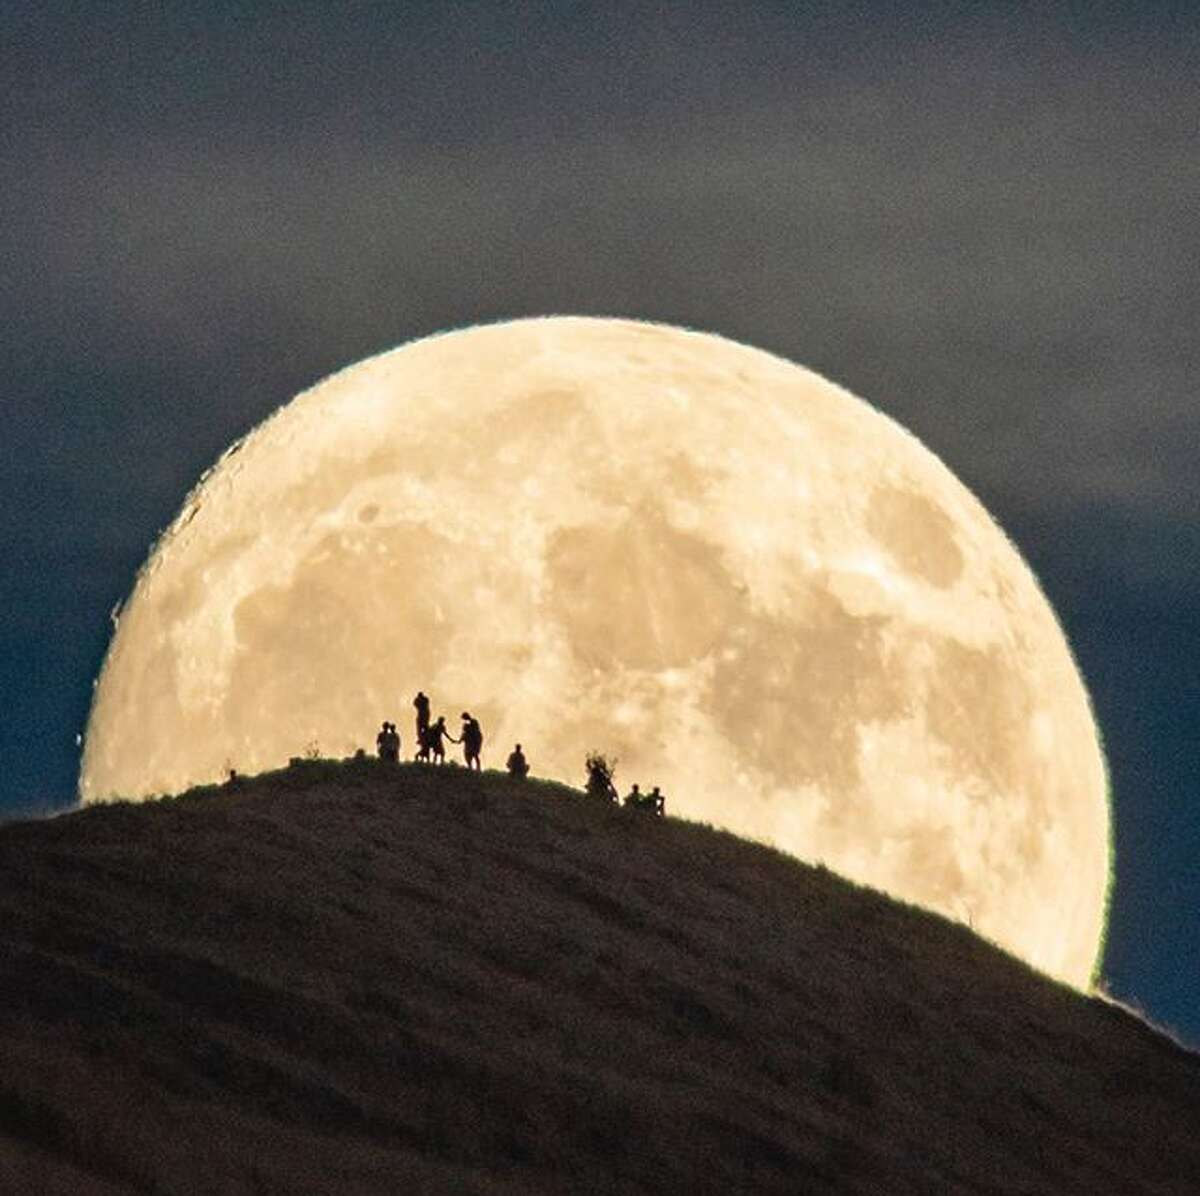 @liewdesign captured this stunning image of a full moon from September over Mission Peak in Fremont.